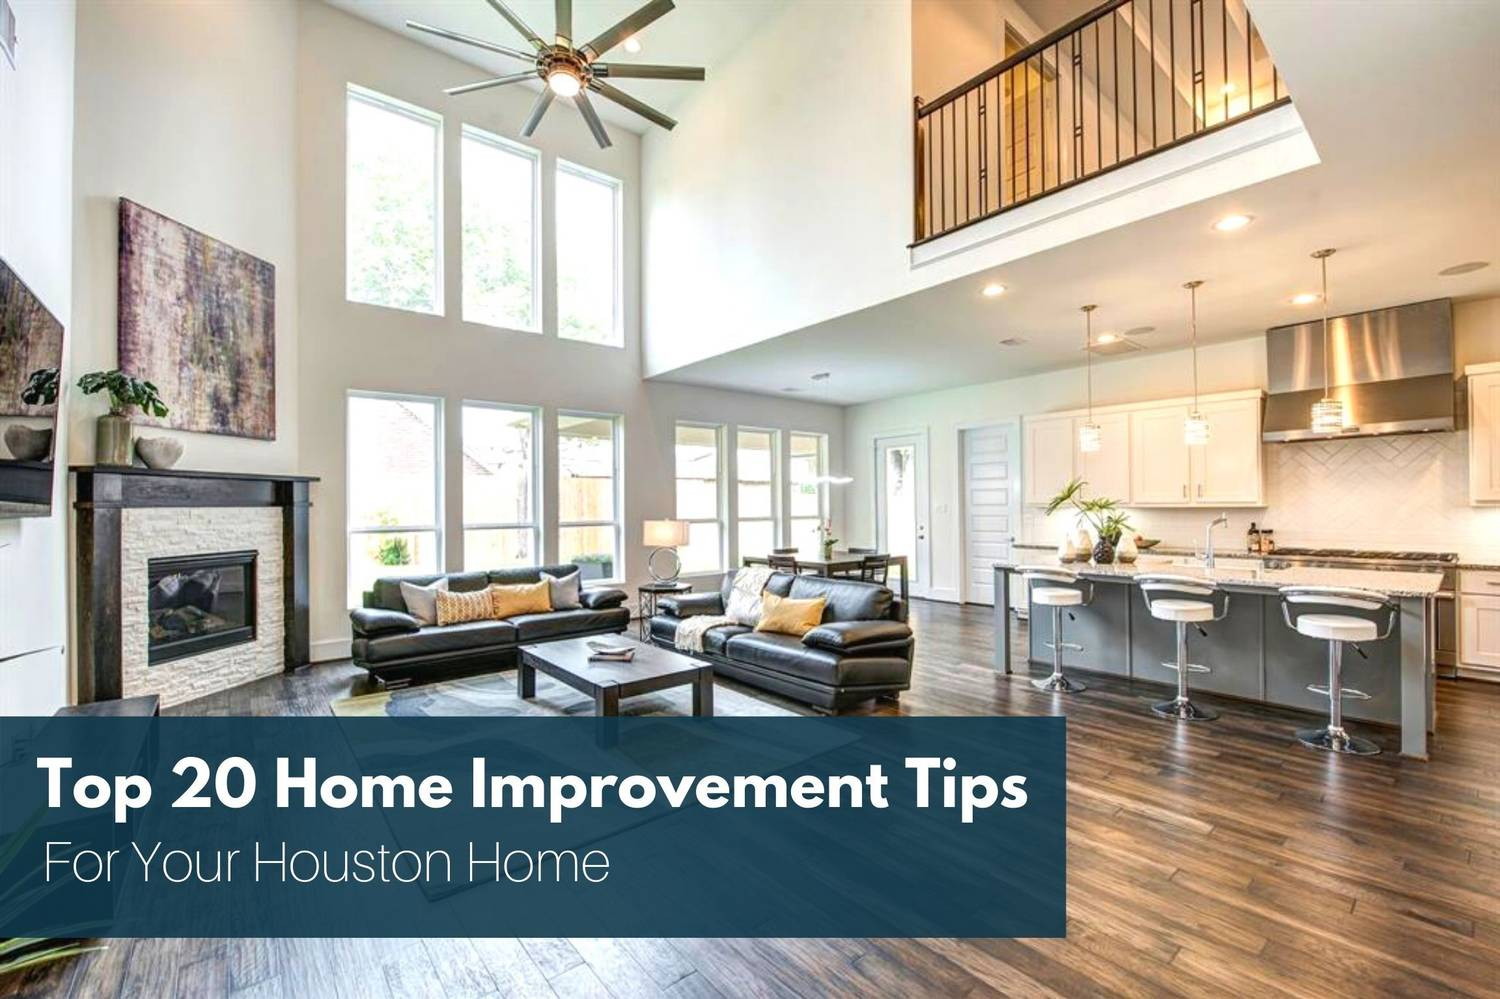 Houston Home Sellers Guide Series #2: Top 20 Home Renovation Tips To Increase Home Value